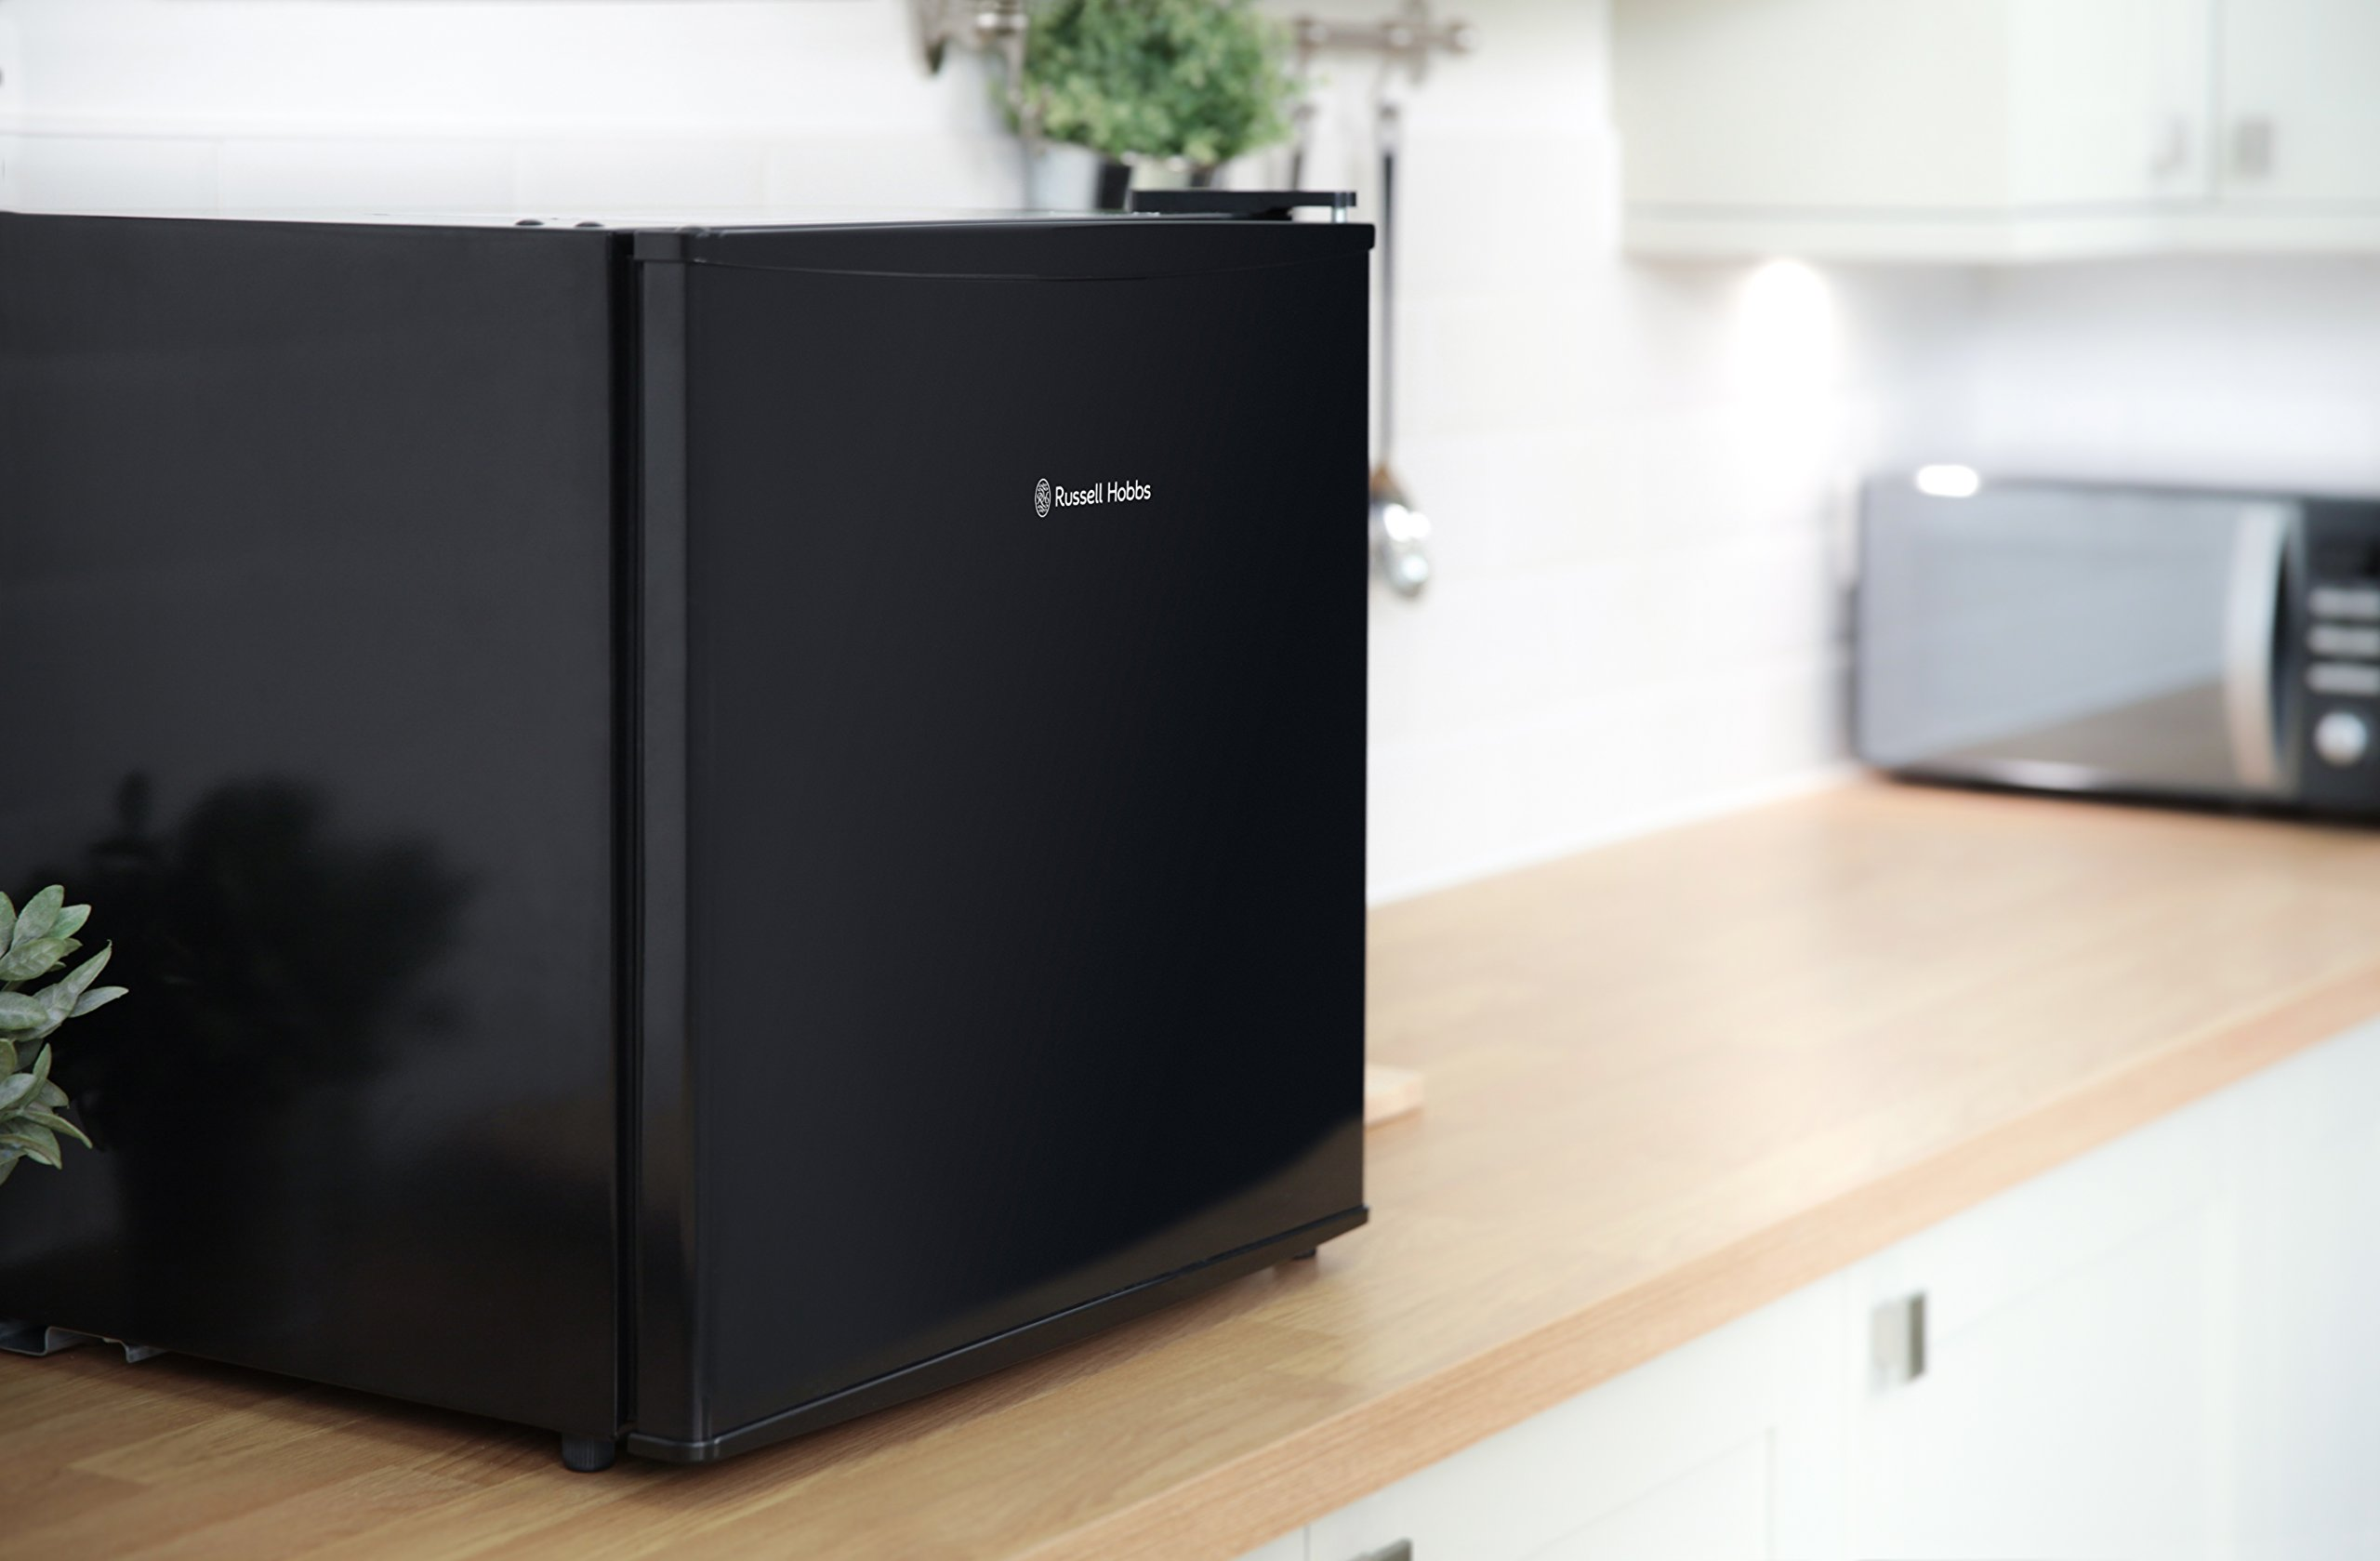 71MF1uY4DWL - Russell Hobbs RHTTLF1B 43L Table Top A+ Energy Rating Fridge Black